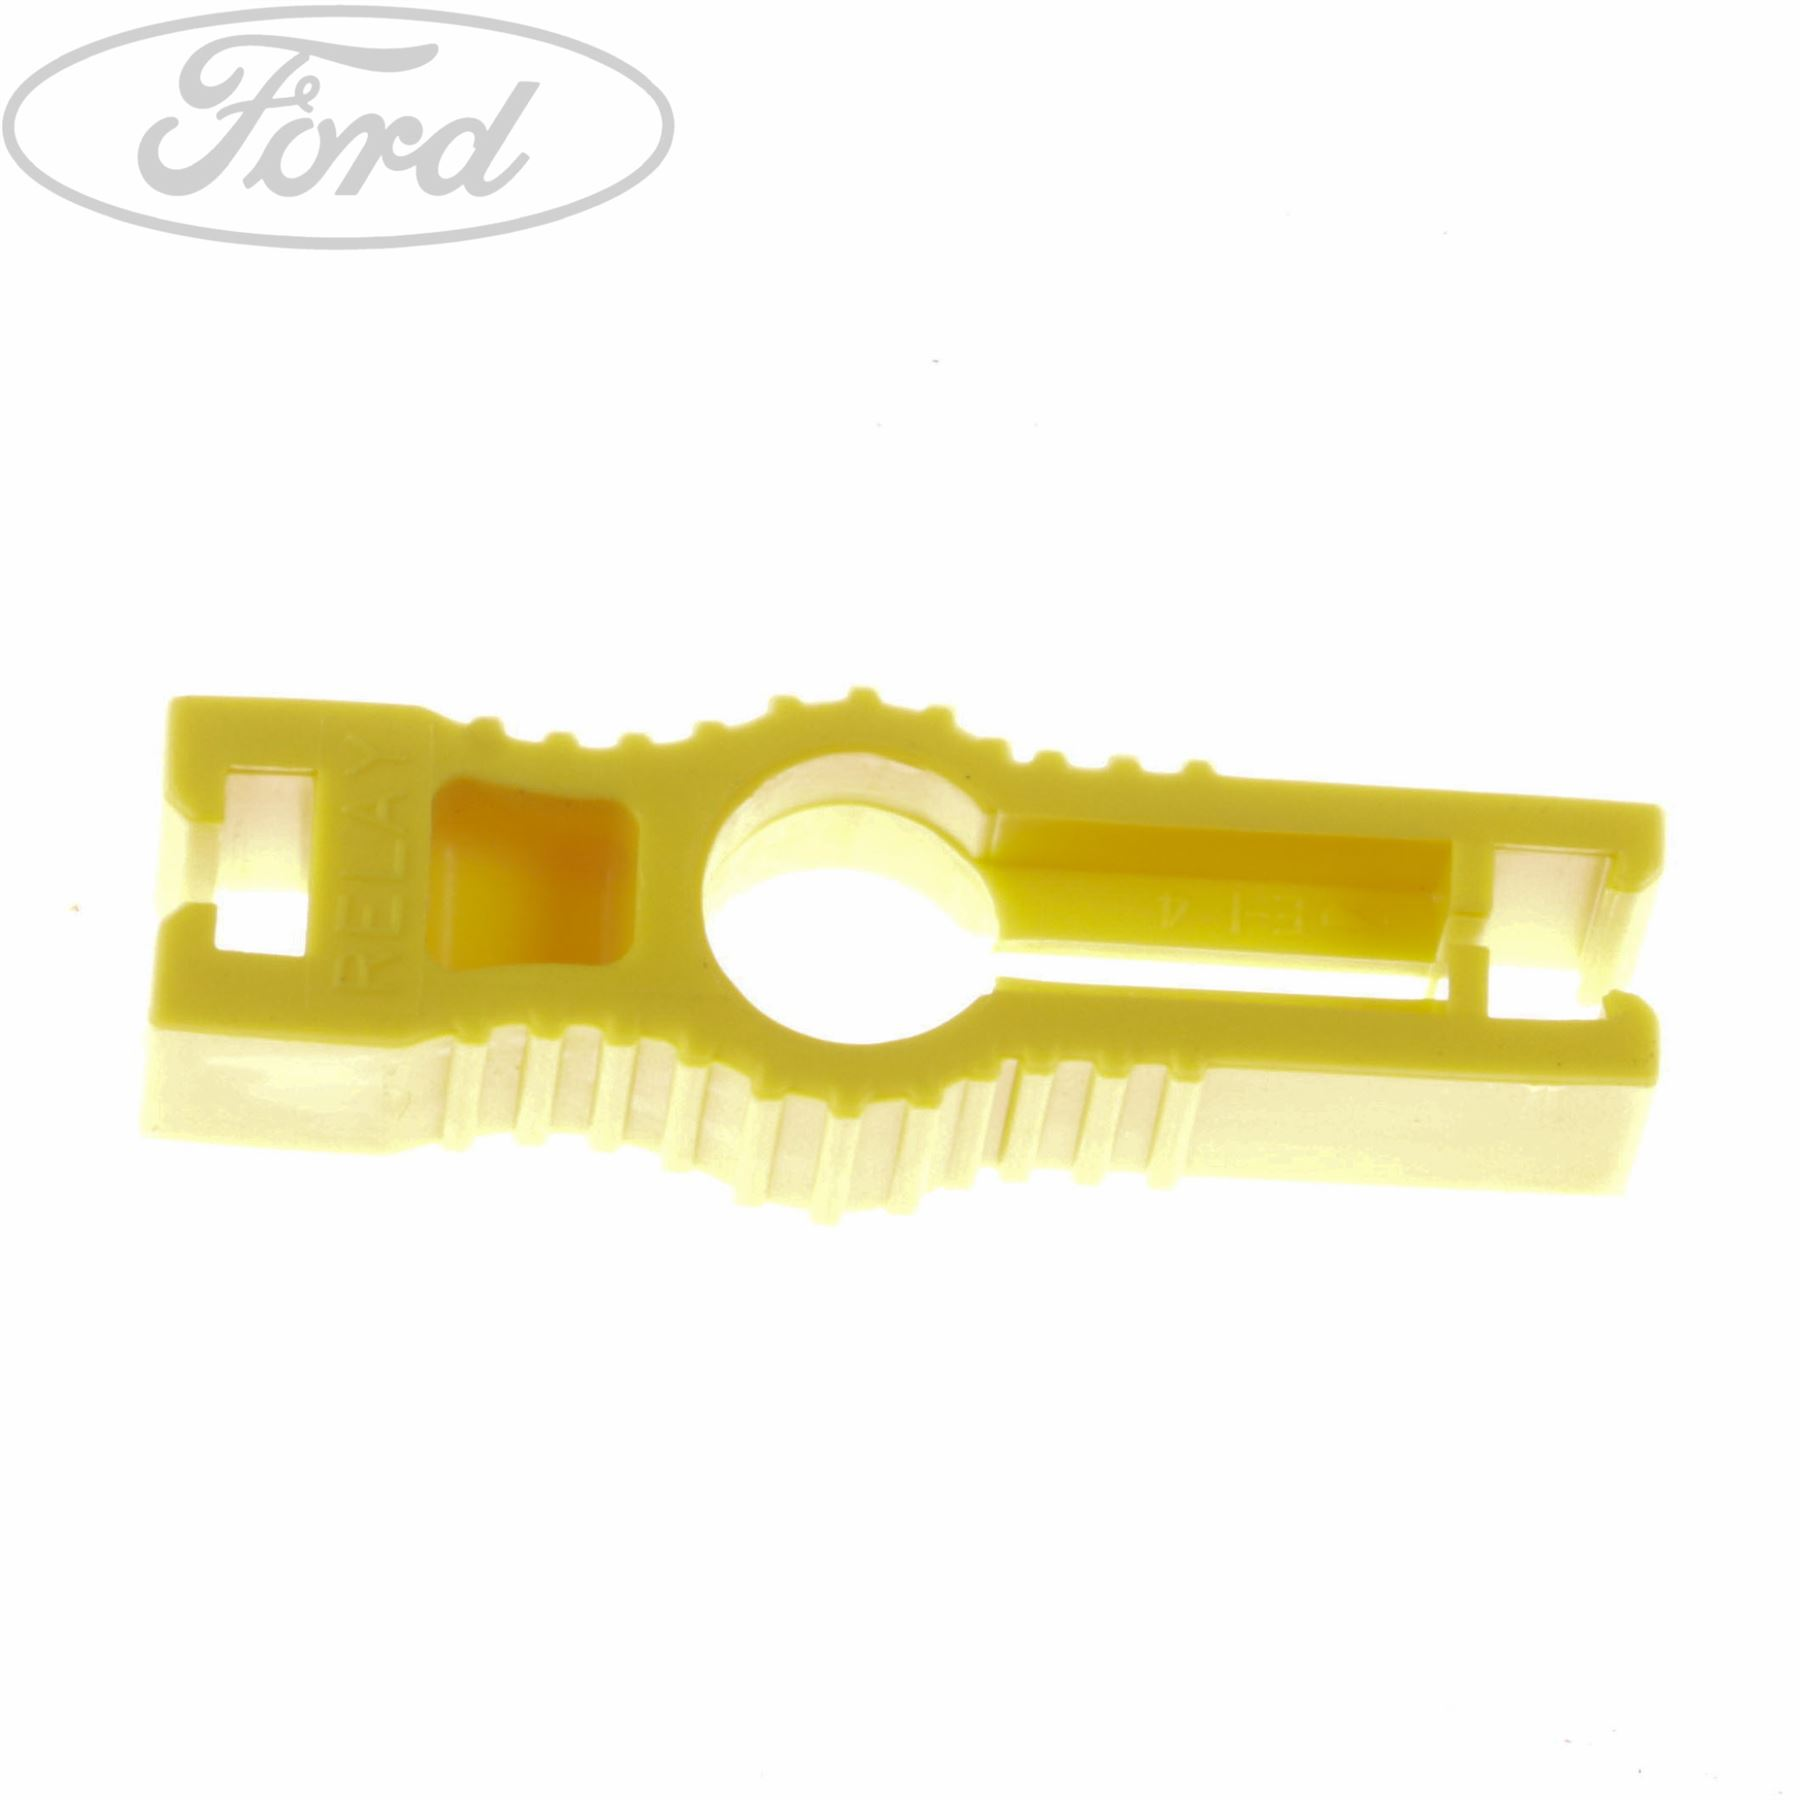 hight resolution of details about genuine ford mondeo mk1 mk2 transit fuse box combination pliers tool 1666670